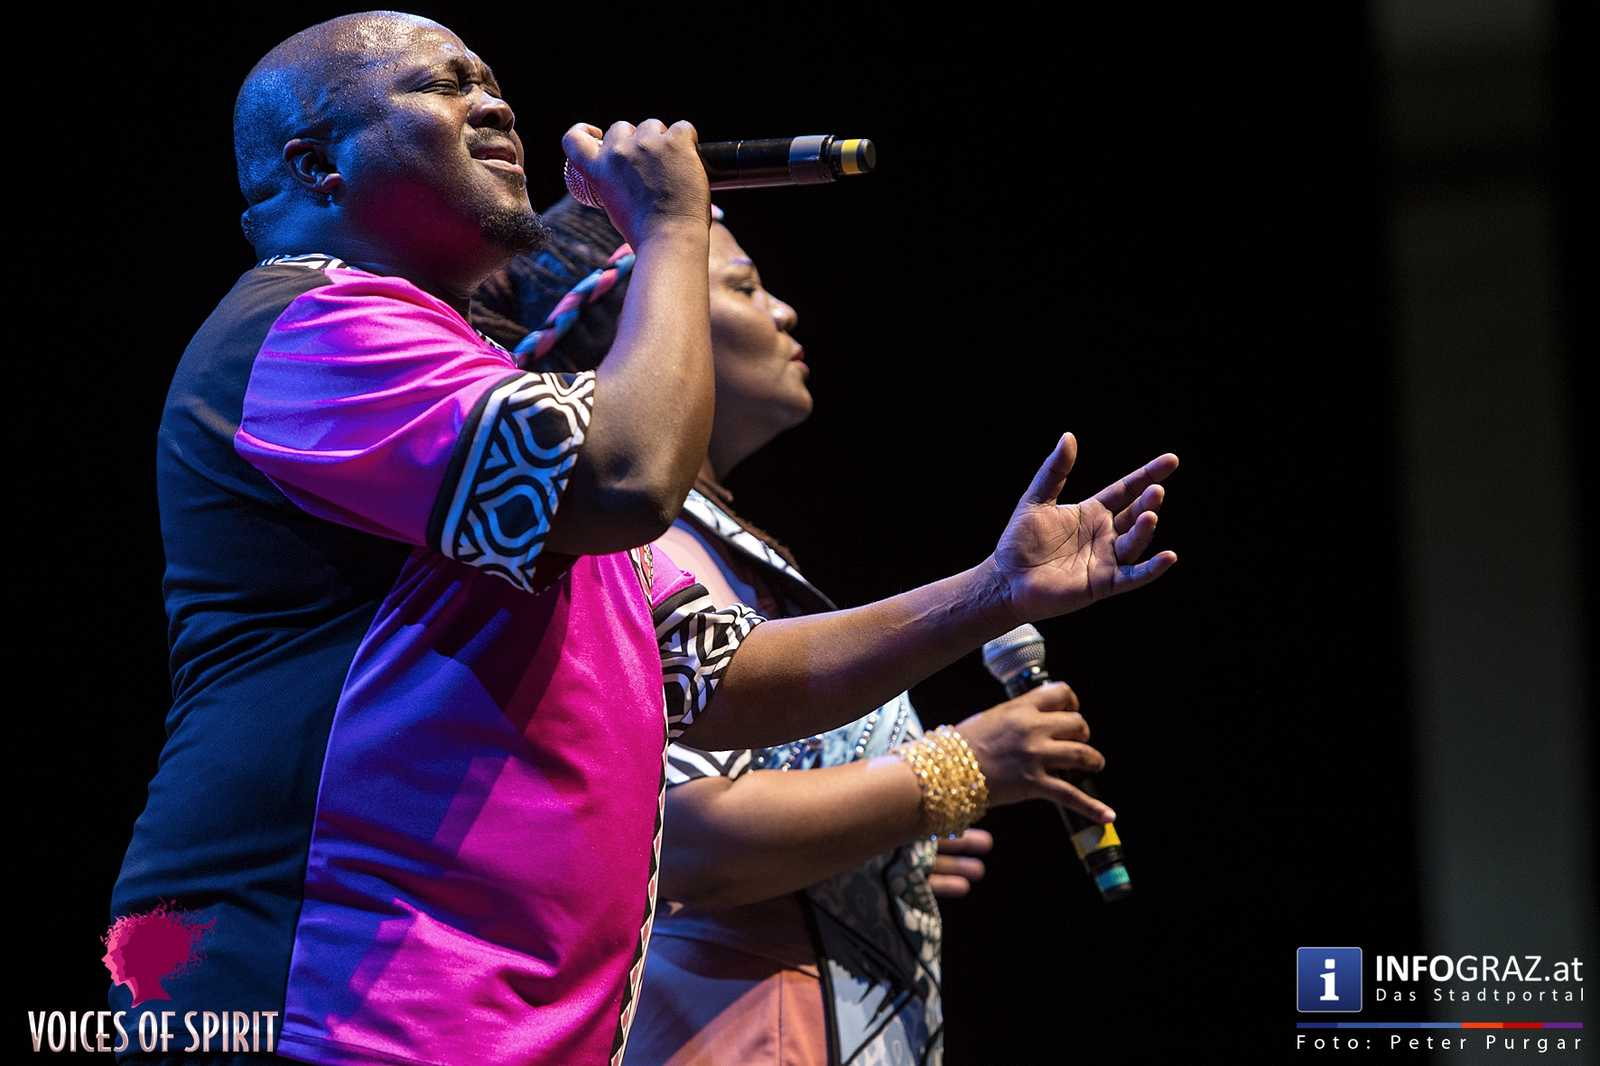 soweto gospel choir internationales chorfestival statdthalle graz voices of spirit eroeffnung festivals 2016 130